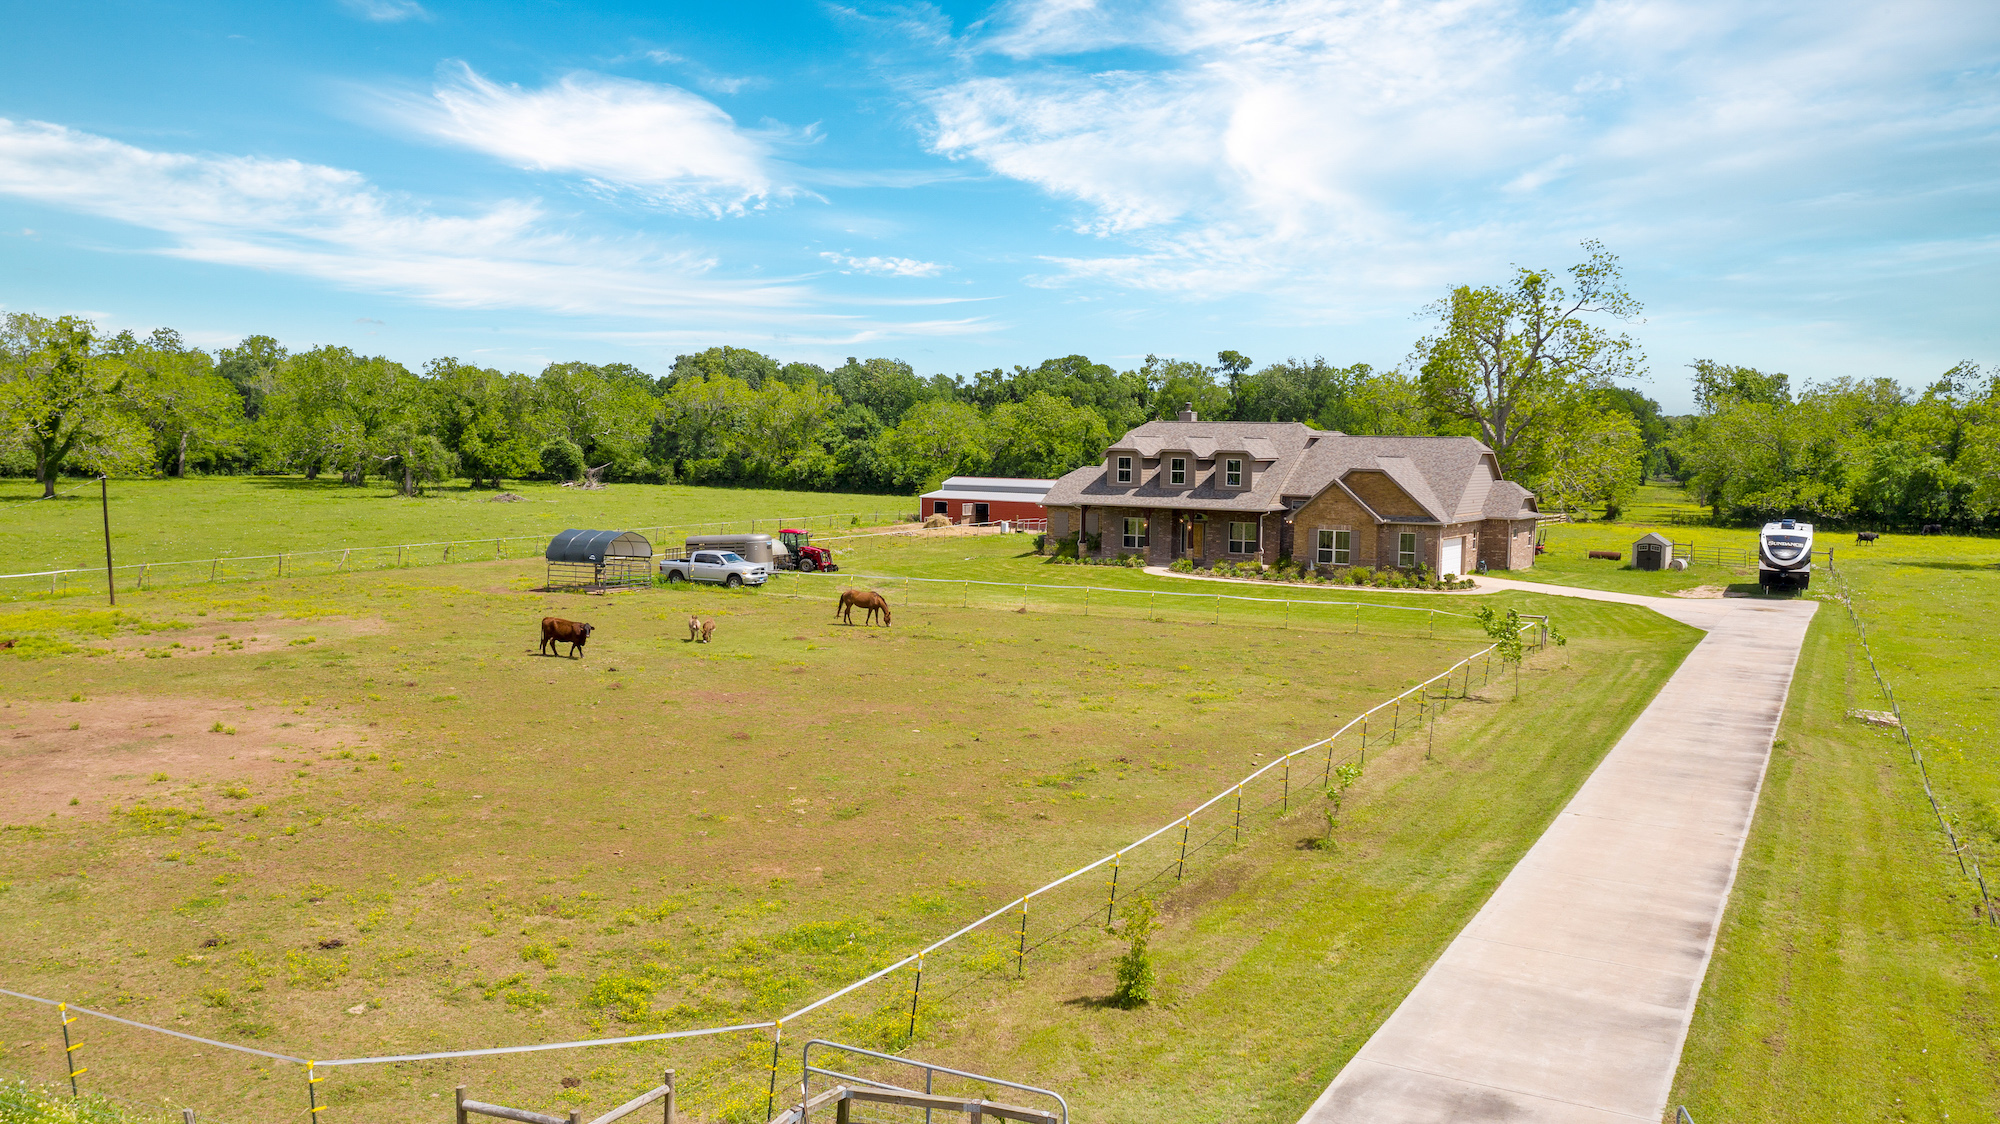 Custom Country Home with Acreage in Sealy - Image 3 of 46